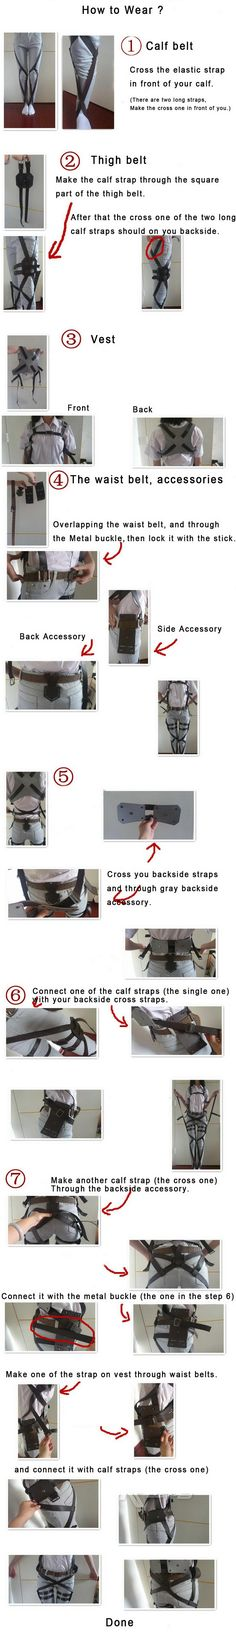 Attack on Titan Belt and Harness | Cosplaywho.com